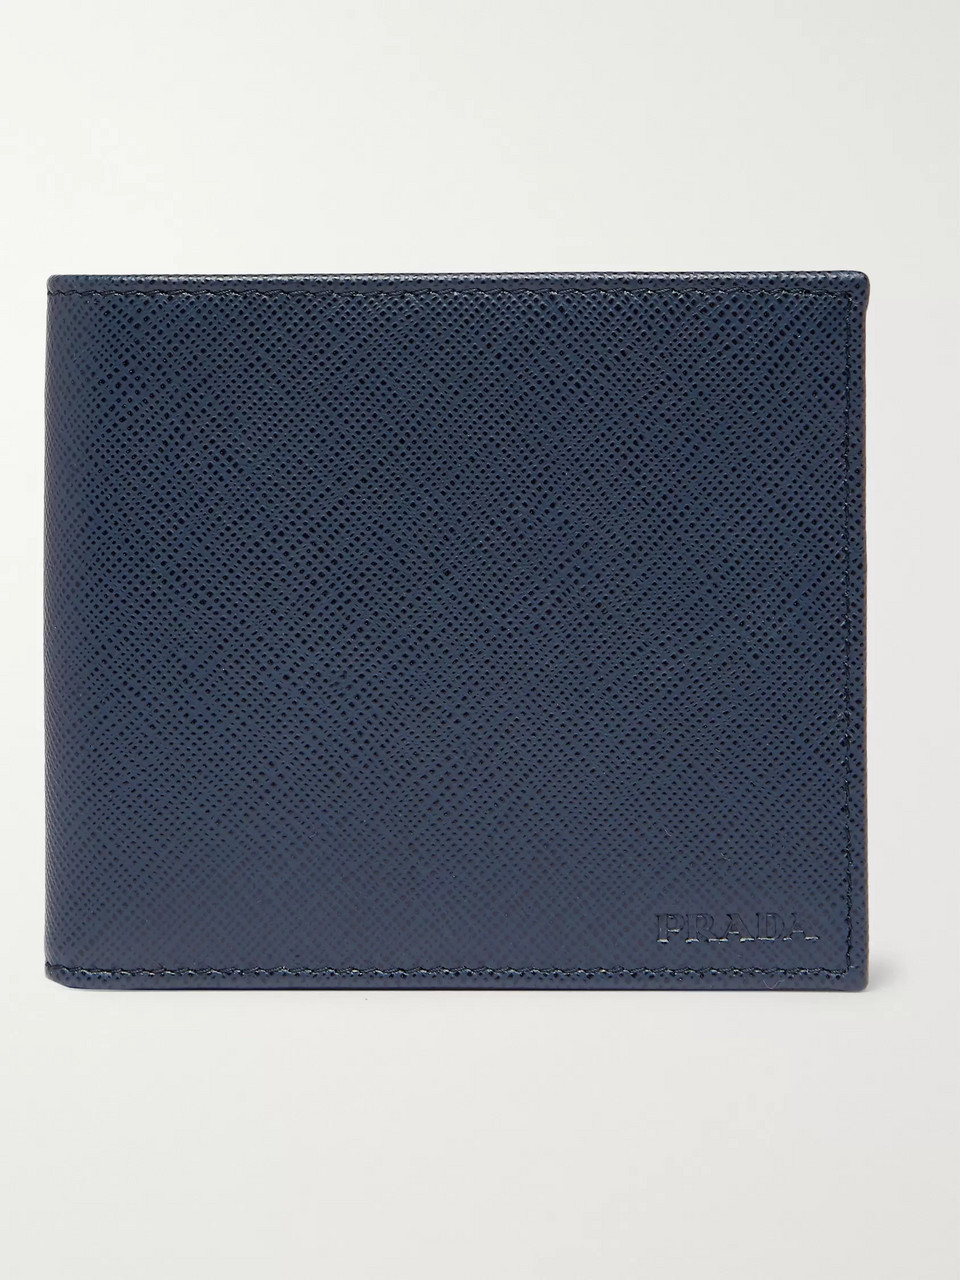 Prada Logo-Debossed Saffiano Leather Billfold Wallet